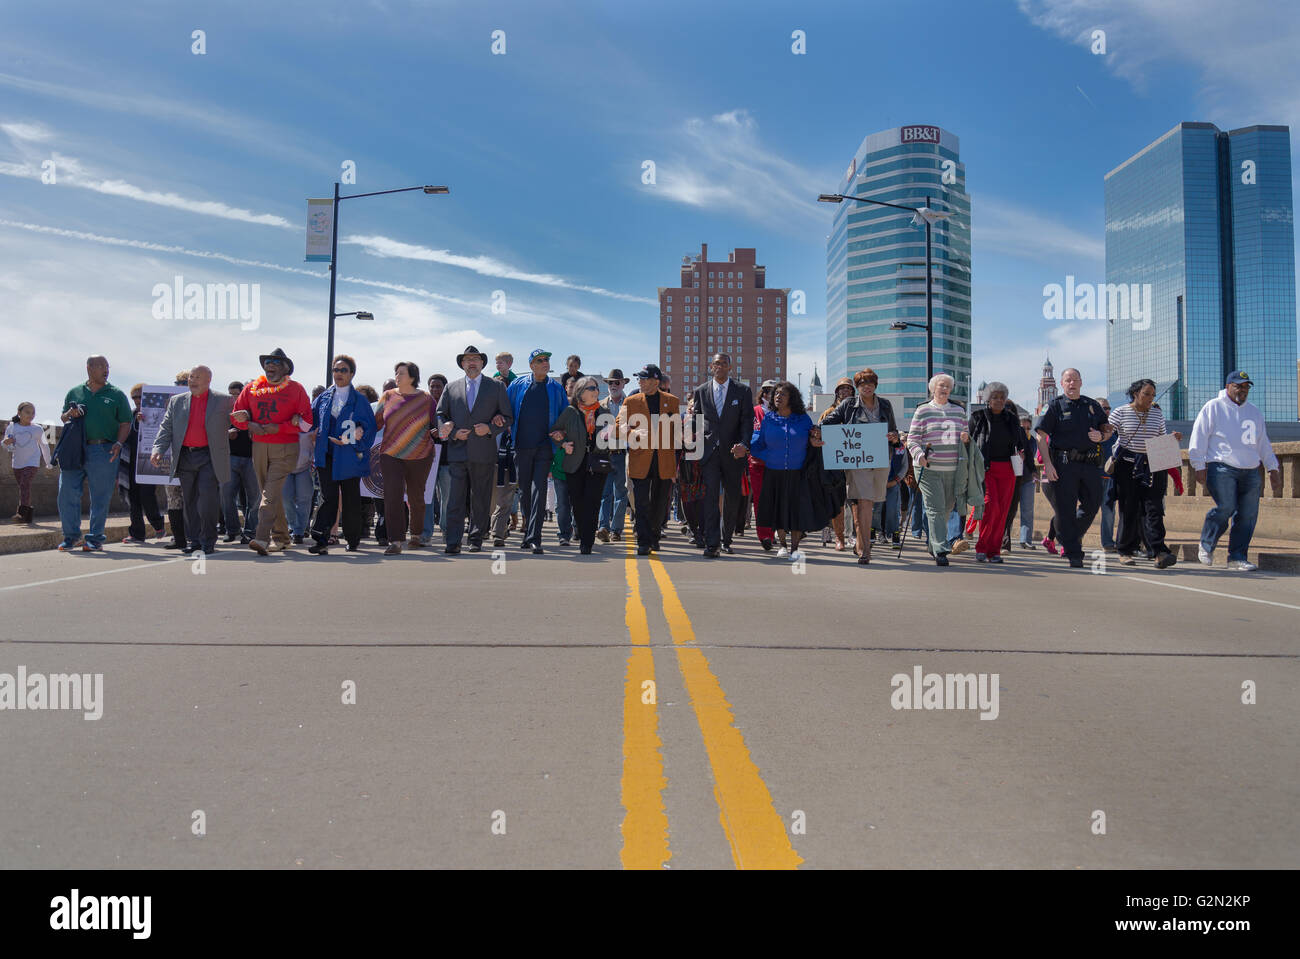 Mayor Reogero and Knoxvillians march together to remember the Selma Marches. - Stock Image